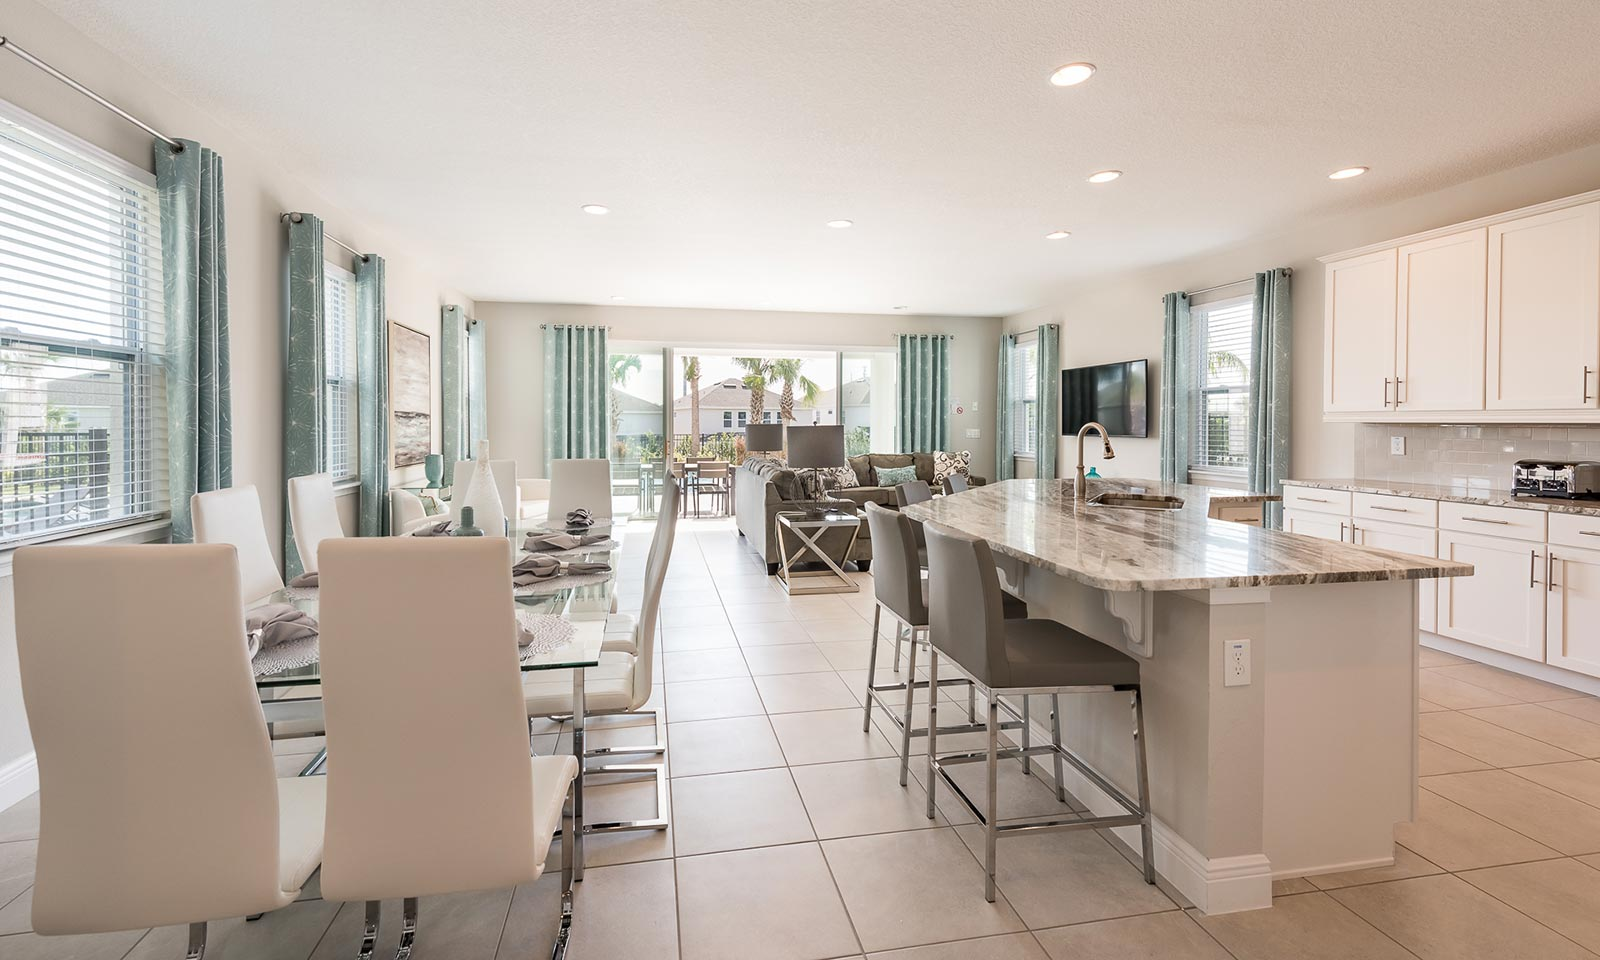 The Incredibly Airy Abode-181205